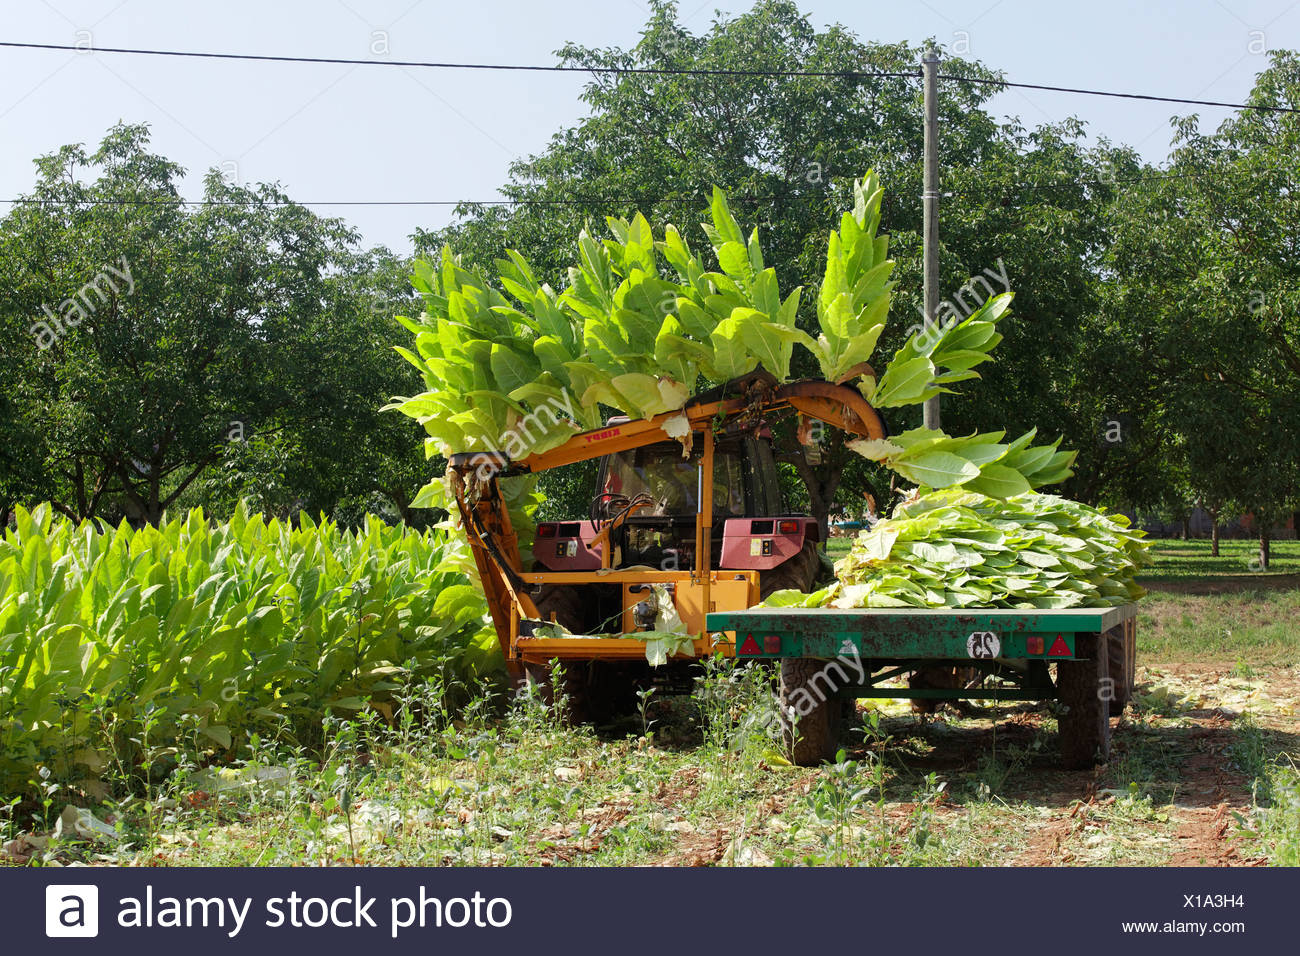 Tobacco growing in Quercy, Lot, France, Europe - Stock Image